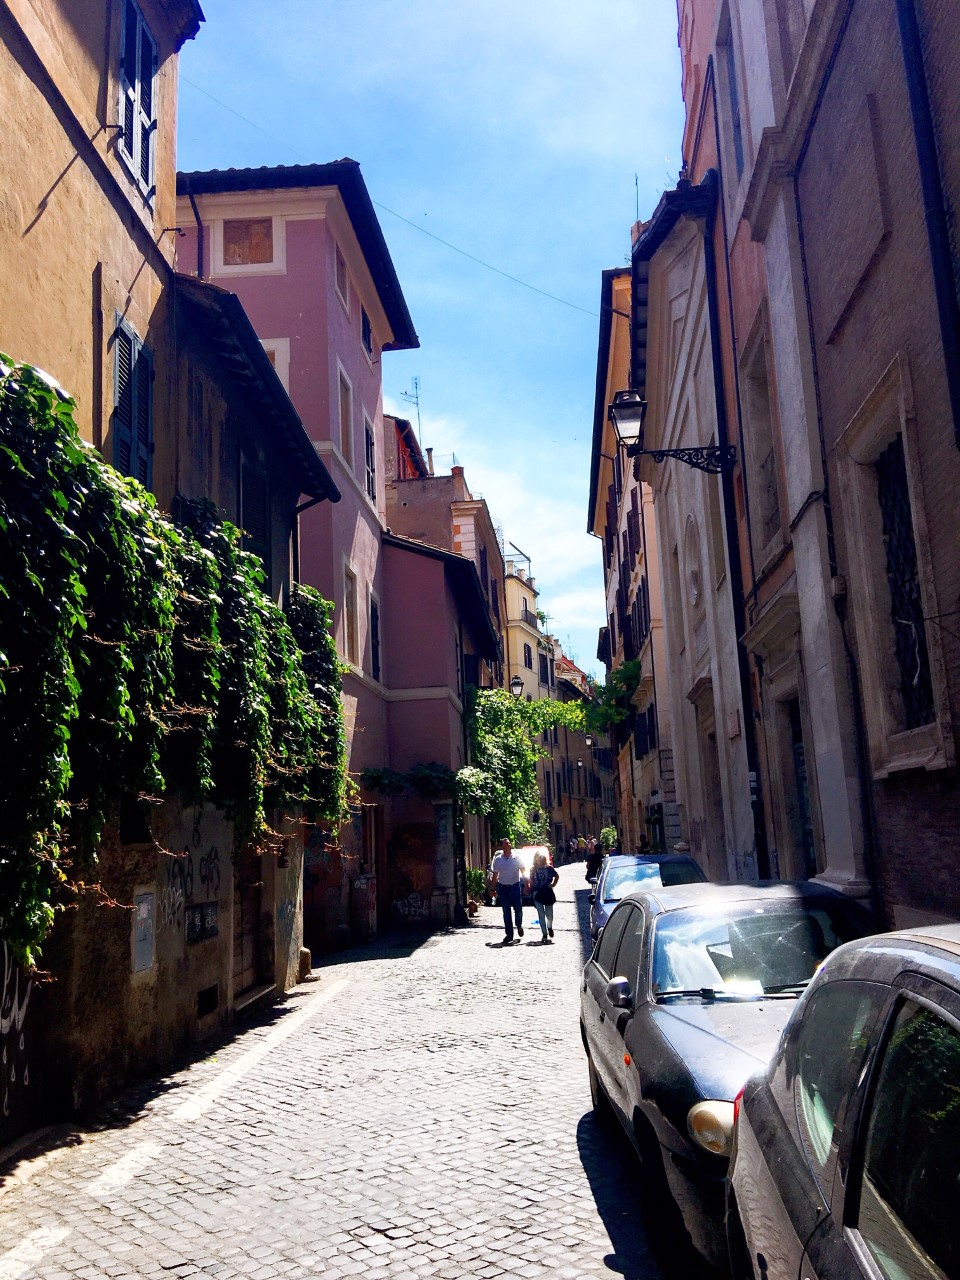 the Monti district or Rione Monti in Rome is full of pretty little streets and incredible eateries. It is also home to the fabulous Monti Market